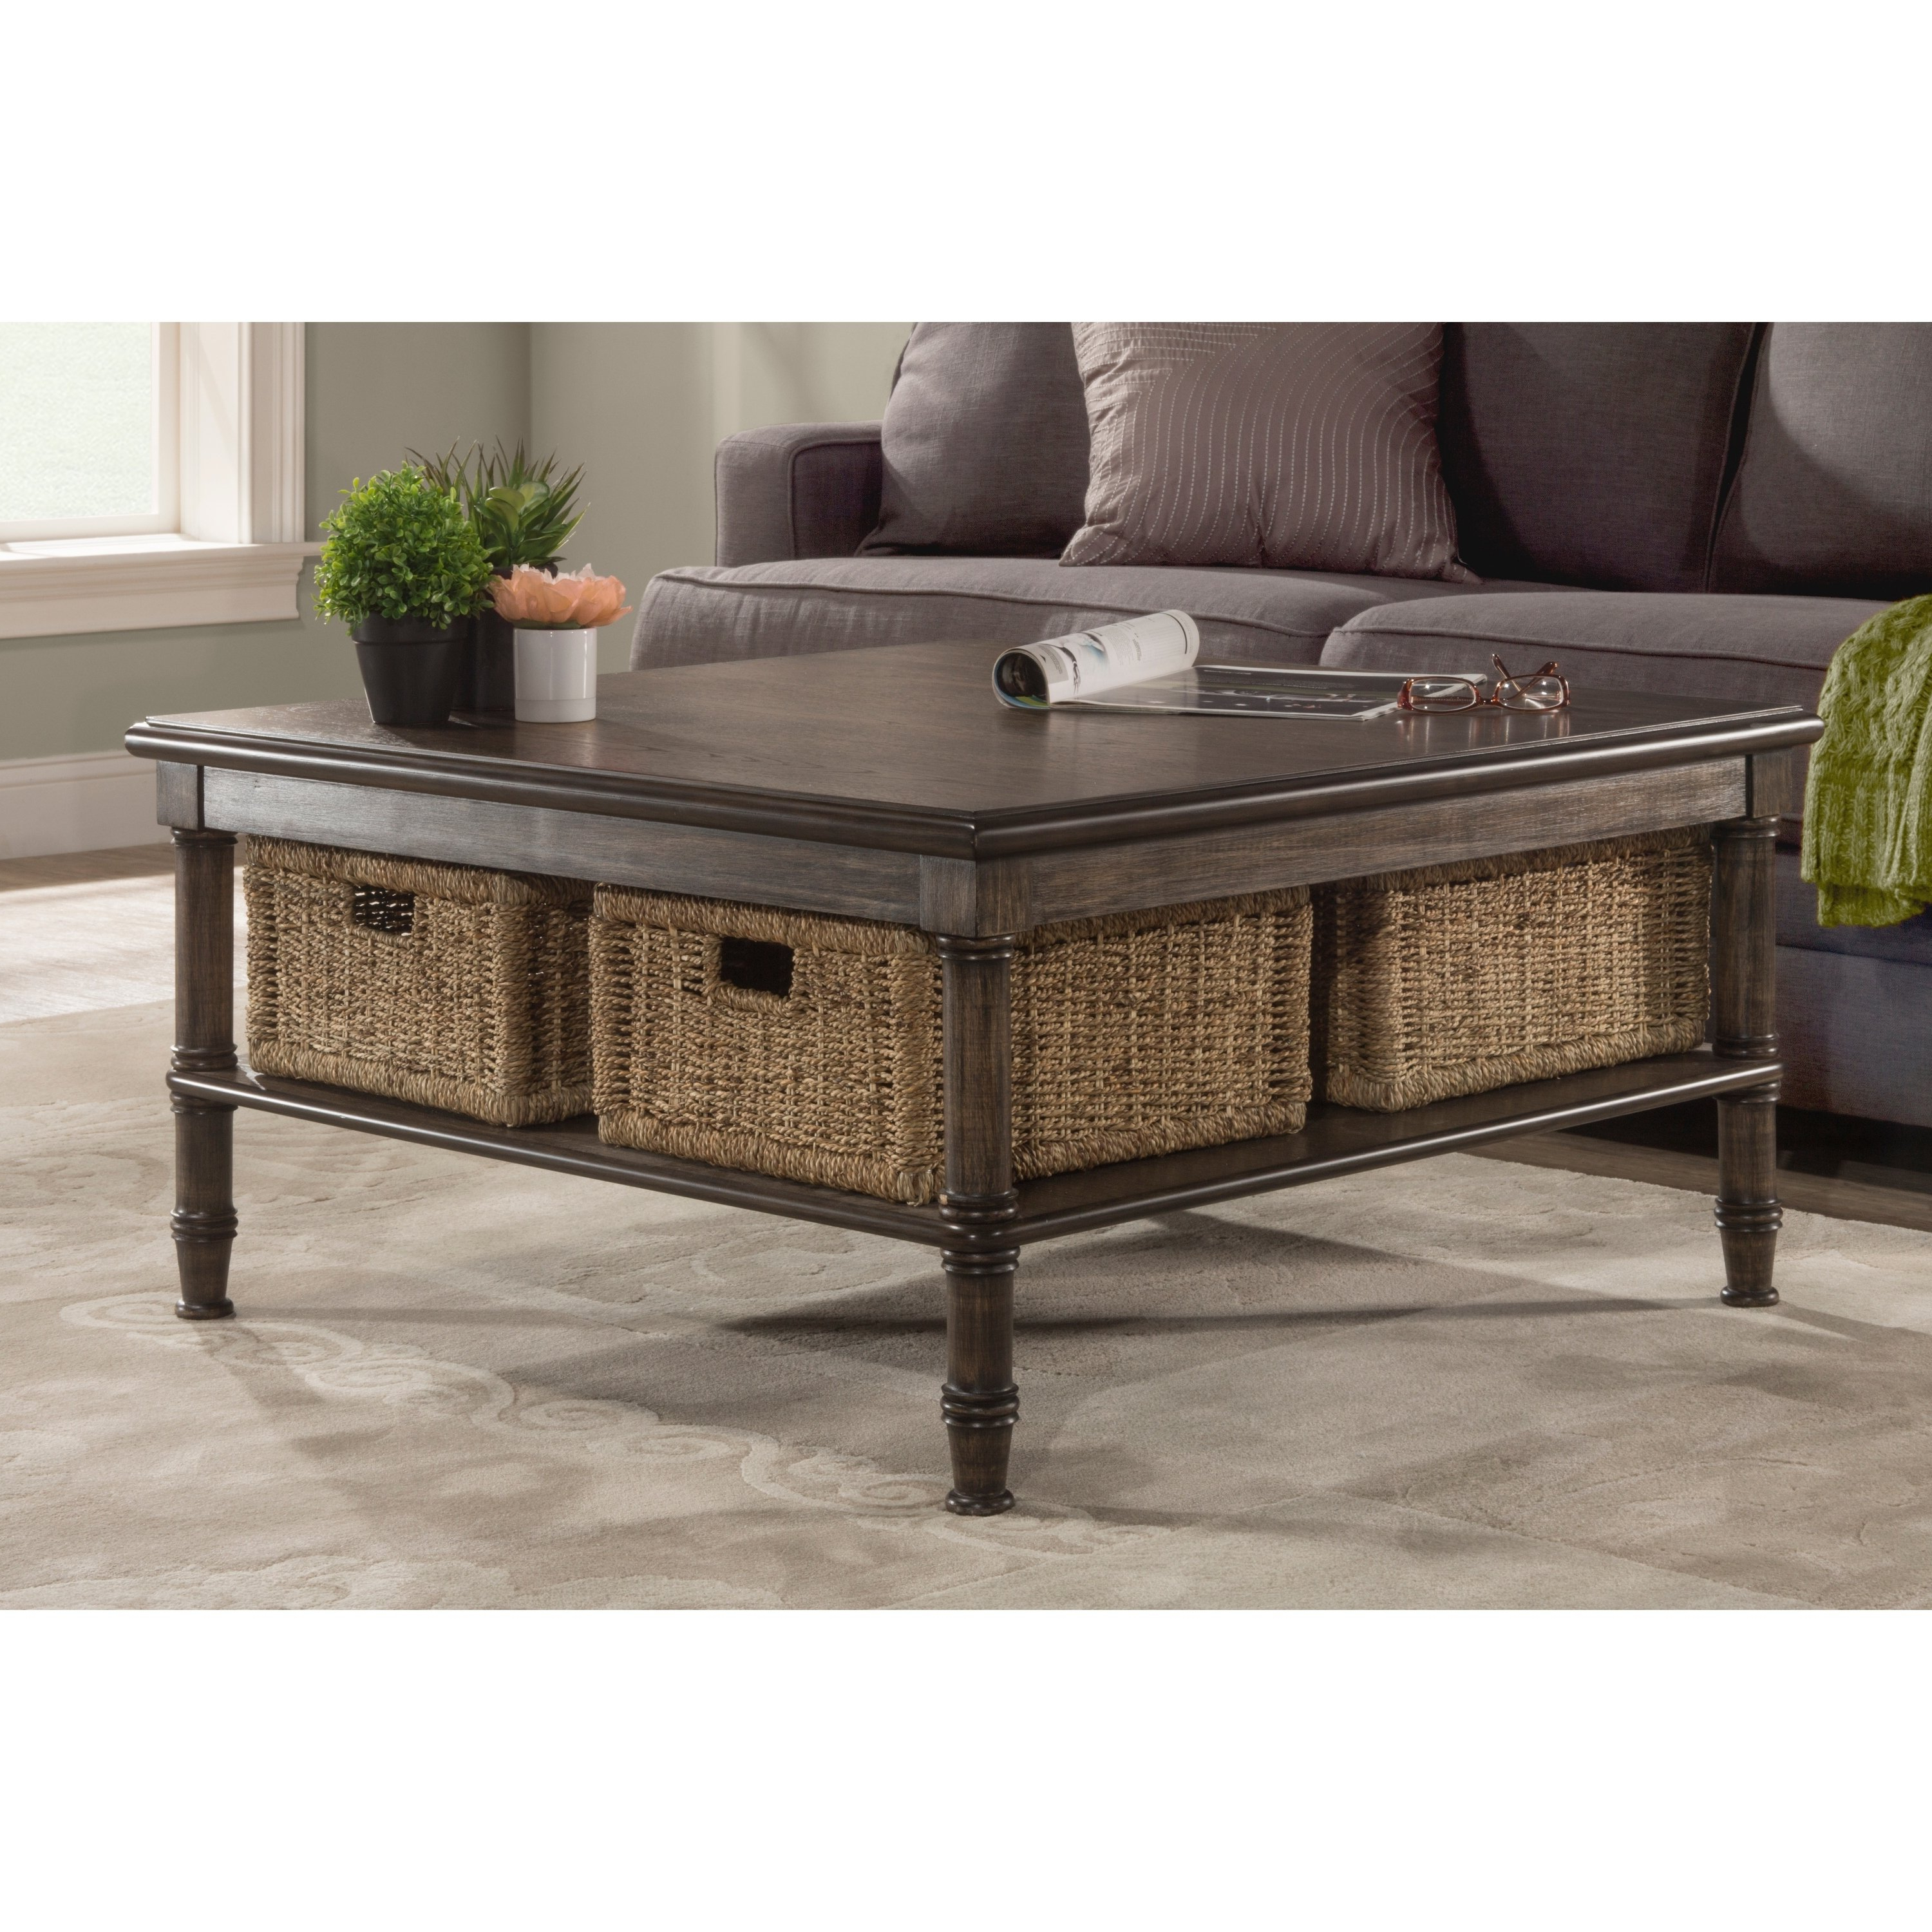 Most Recent Shop Seneca Coffee Table – 4 Baskets Included – Free Shipping Today Throughout Seneca Lift Top Cocktail Tables (View 2 of 20)